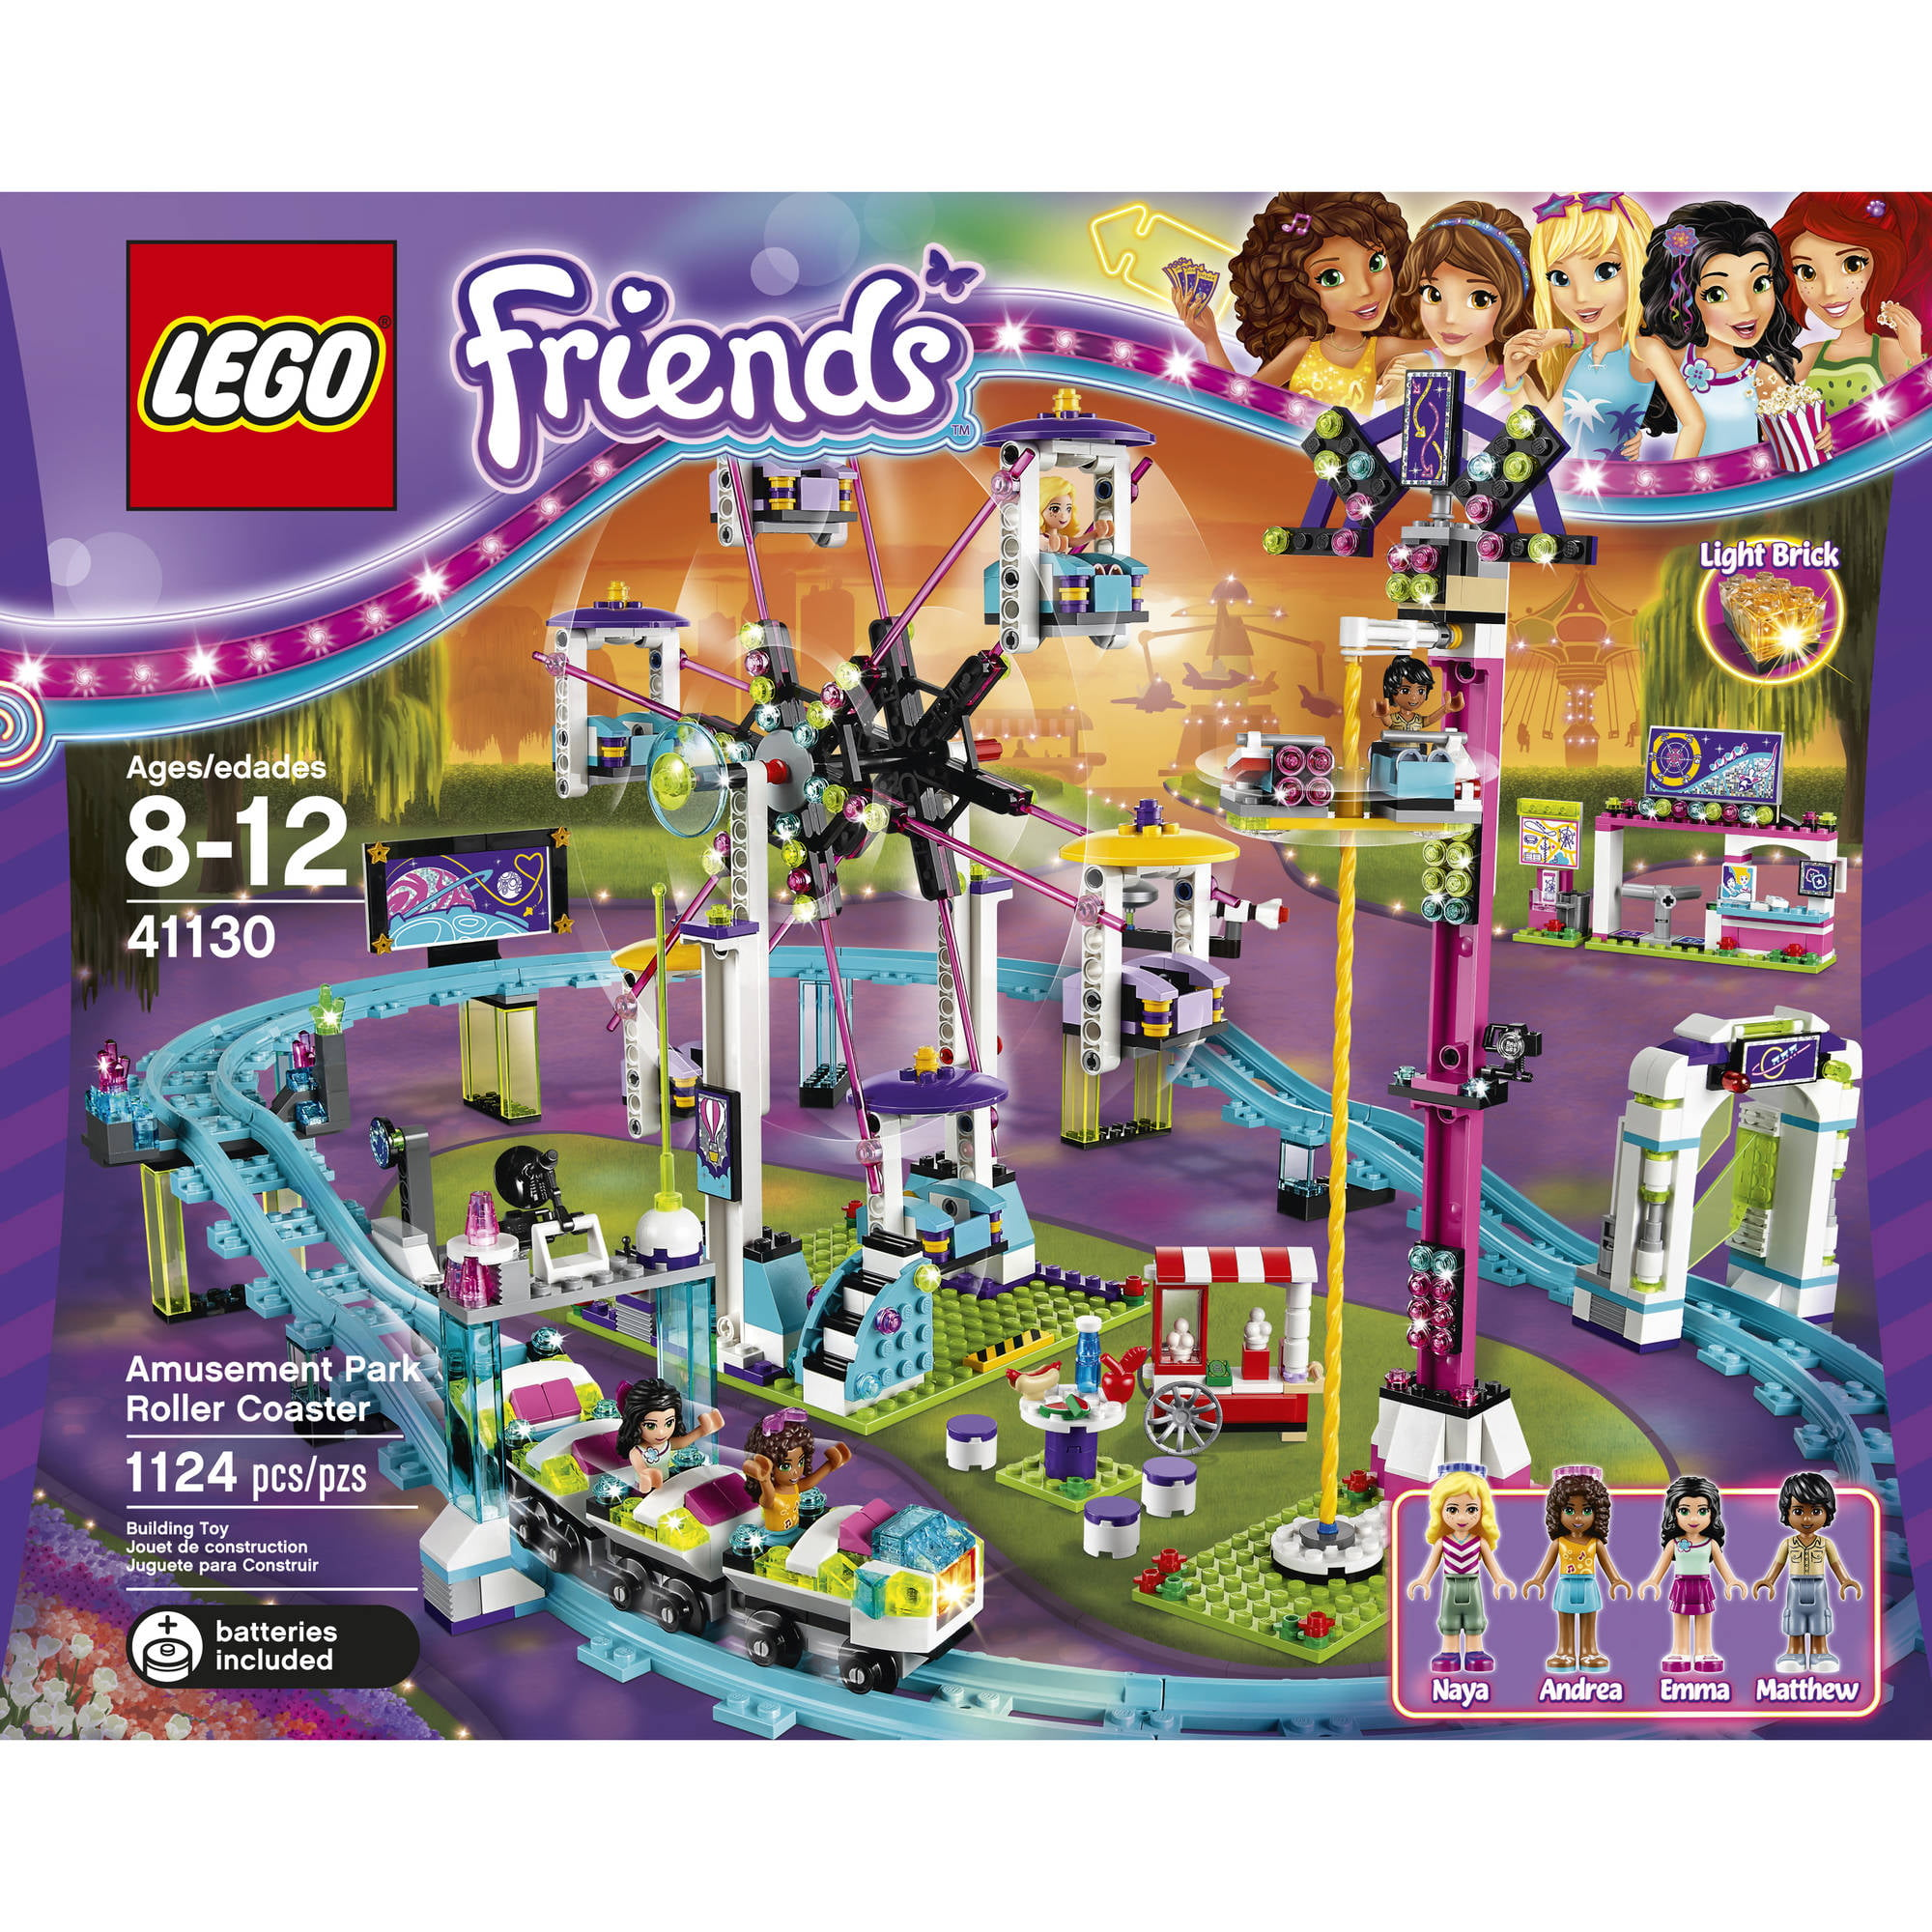 LEGO Friends Amusement Park Roller Coaster Toy KIDS Play Game For Girls Boys